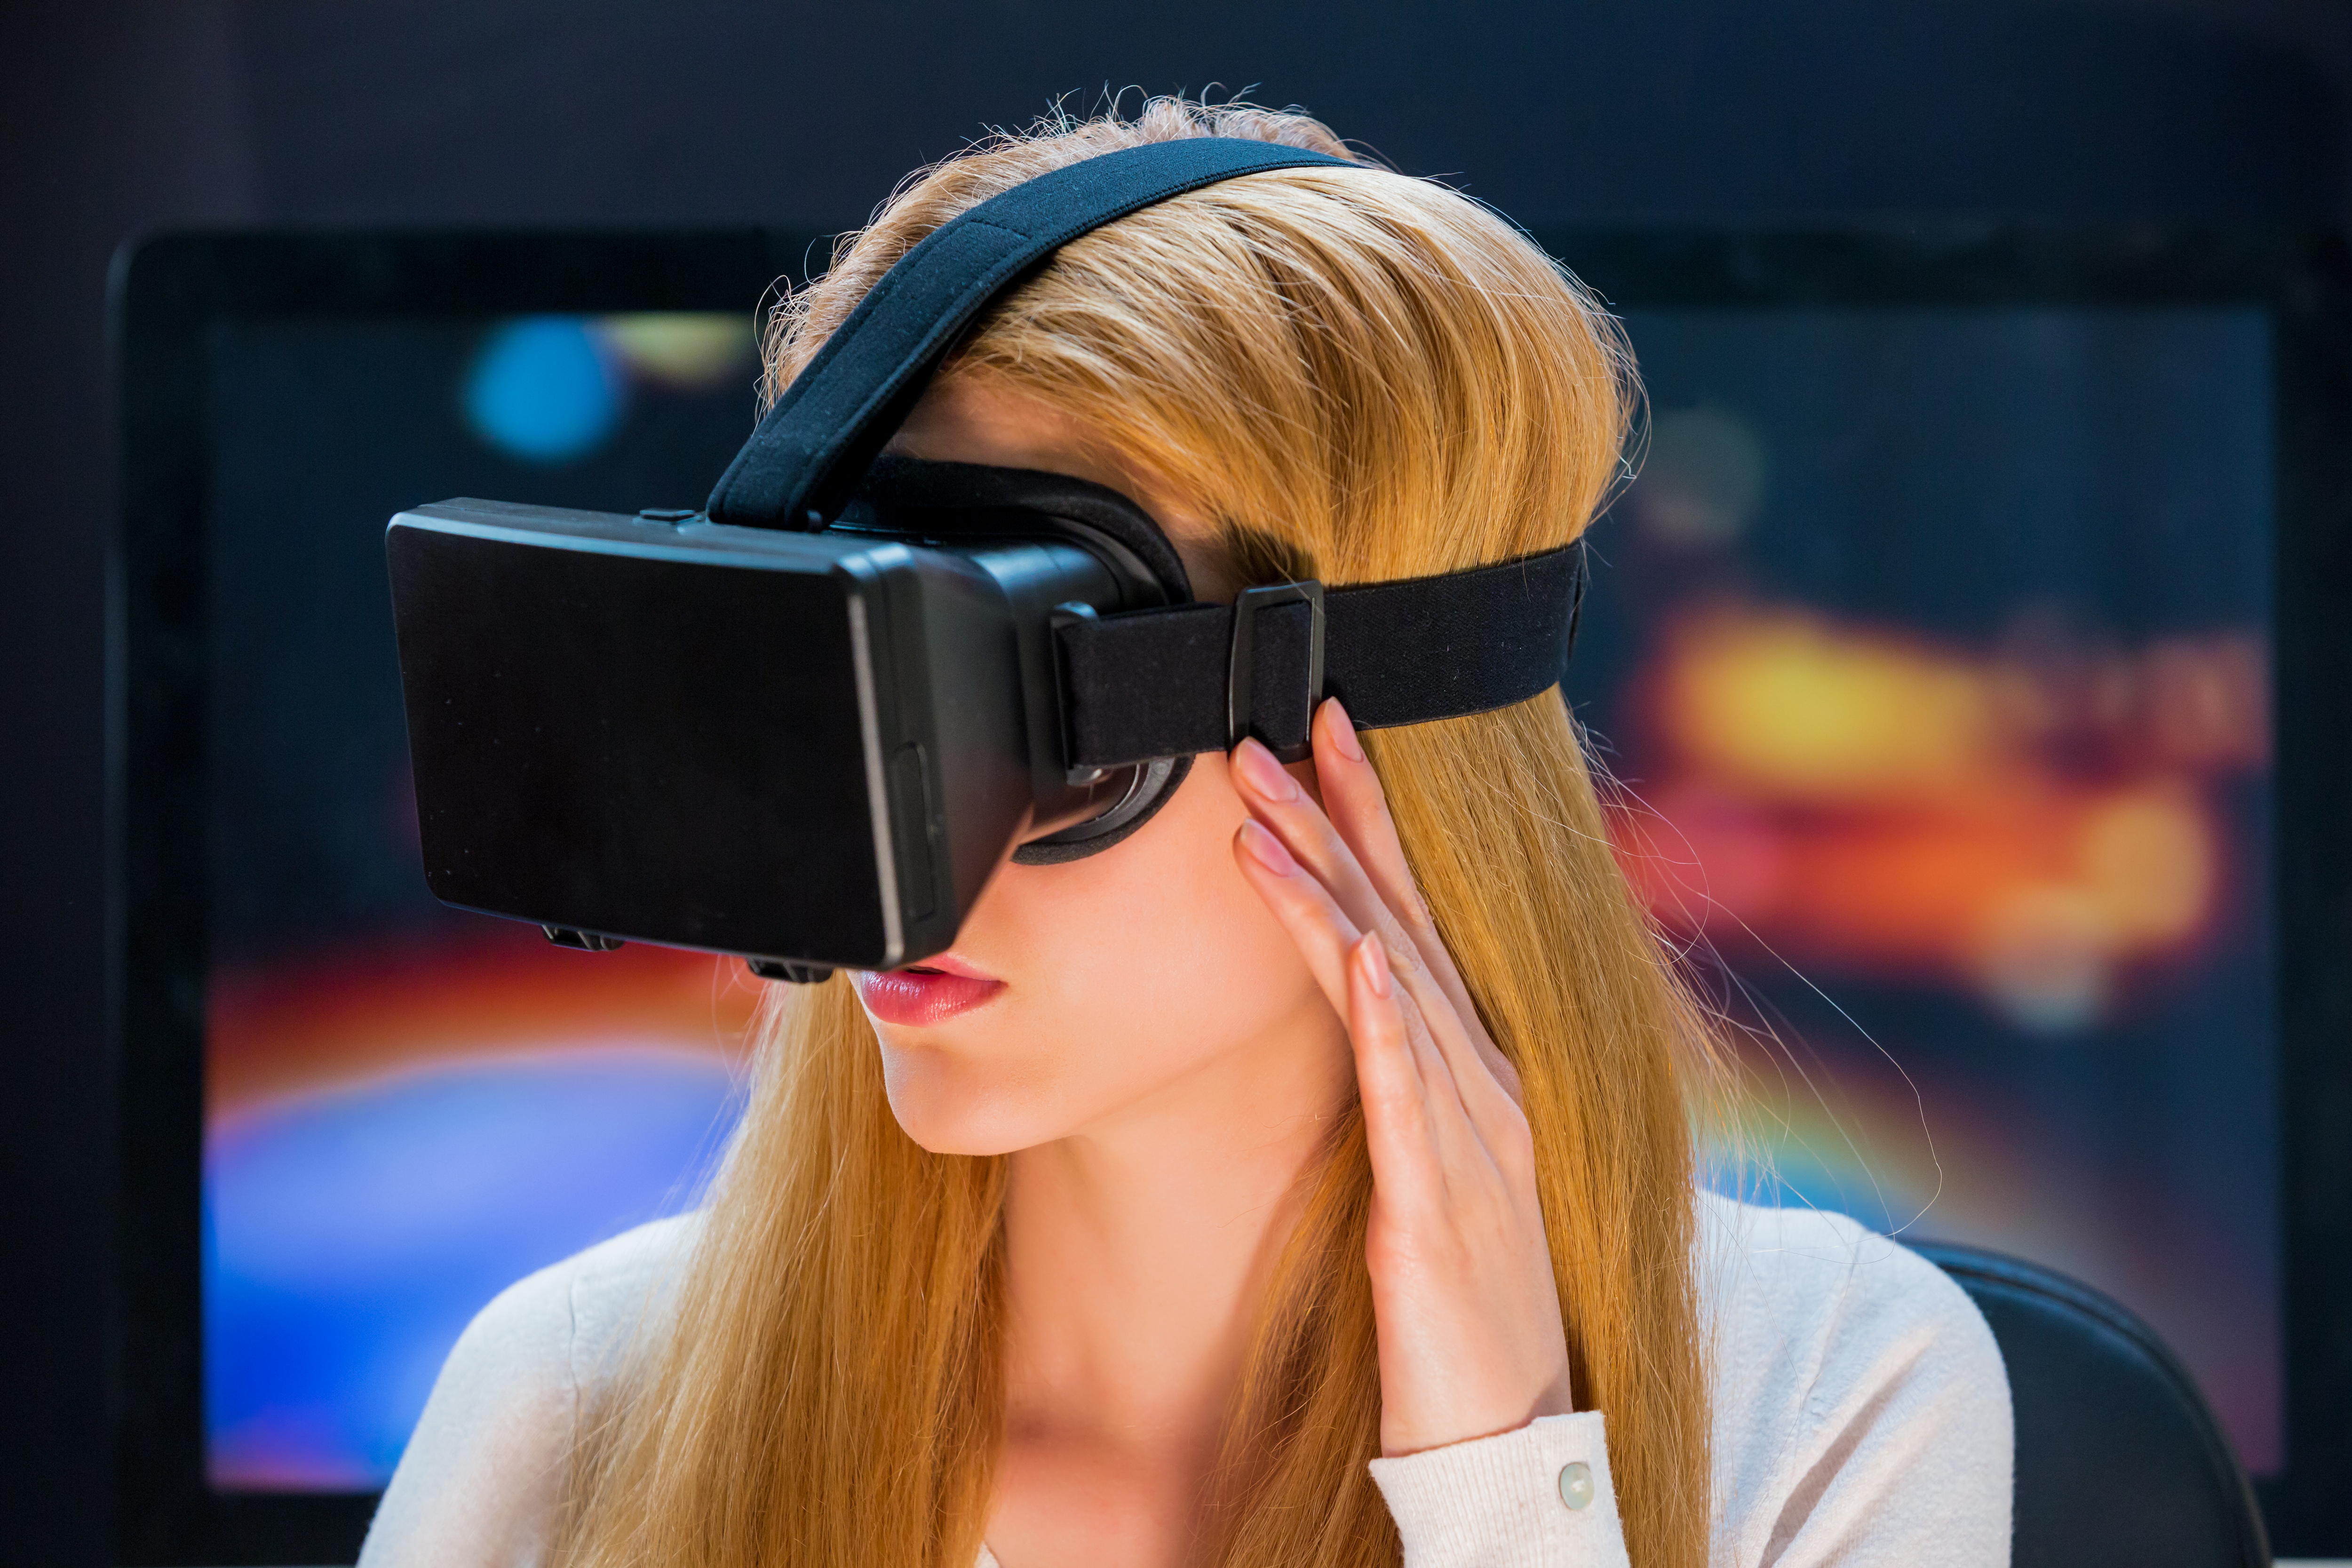 woman-uses-head-mounted-display